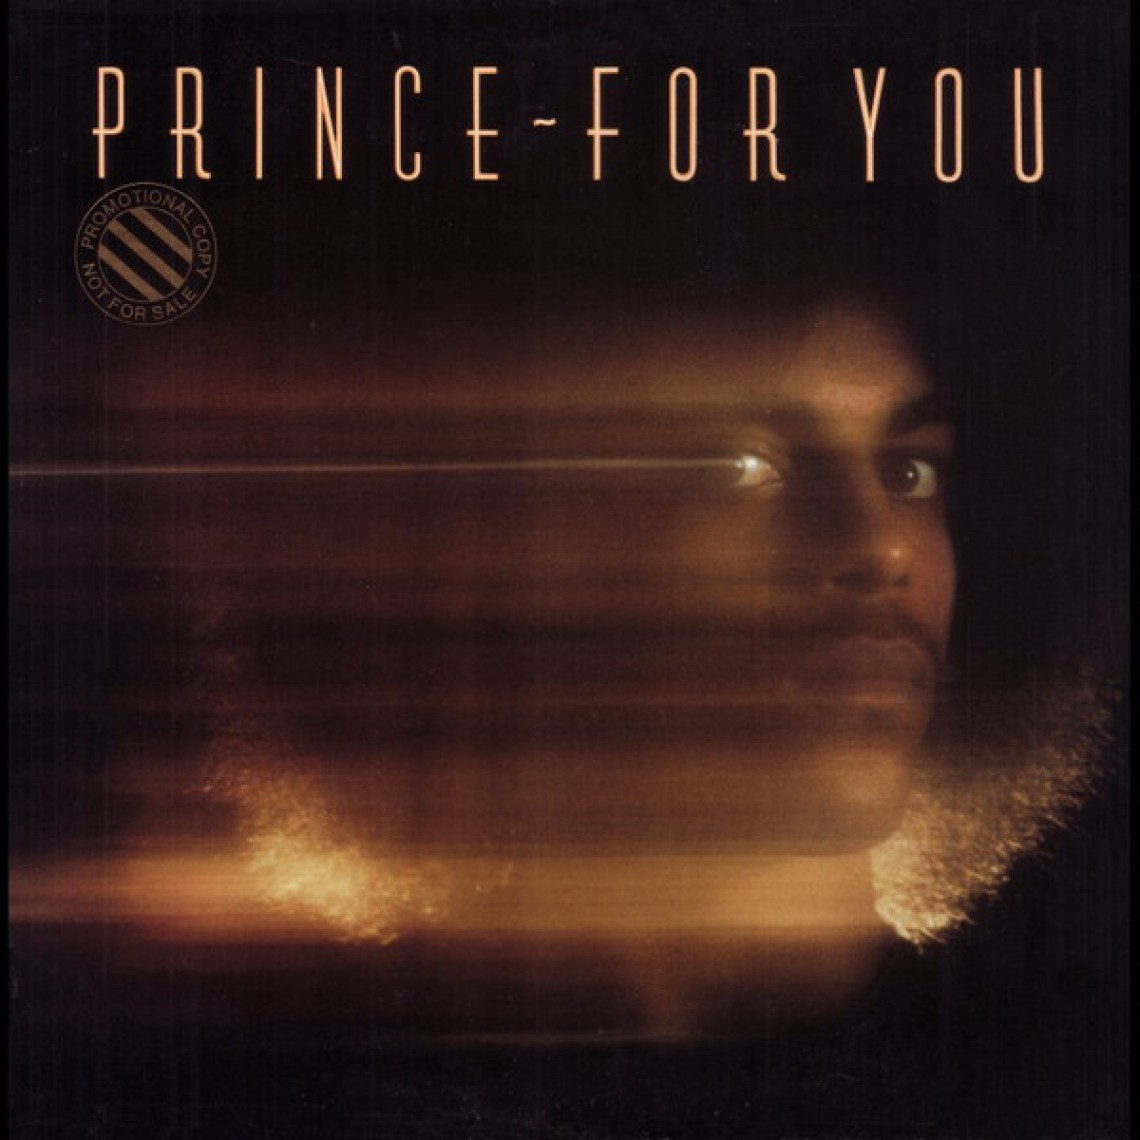 The Legend Slot: Prince - For You (1978)